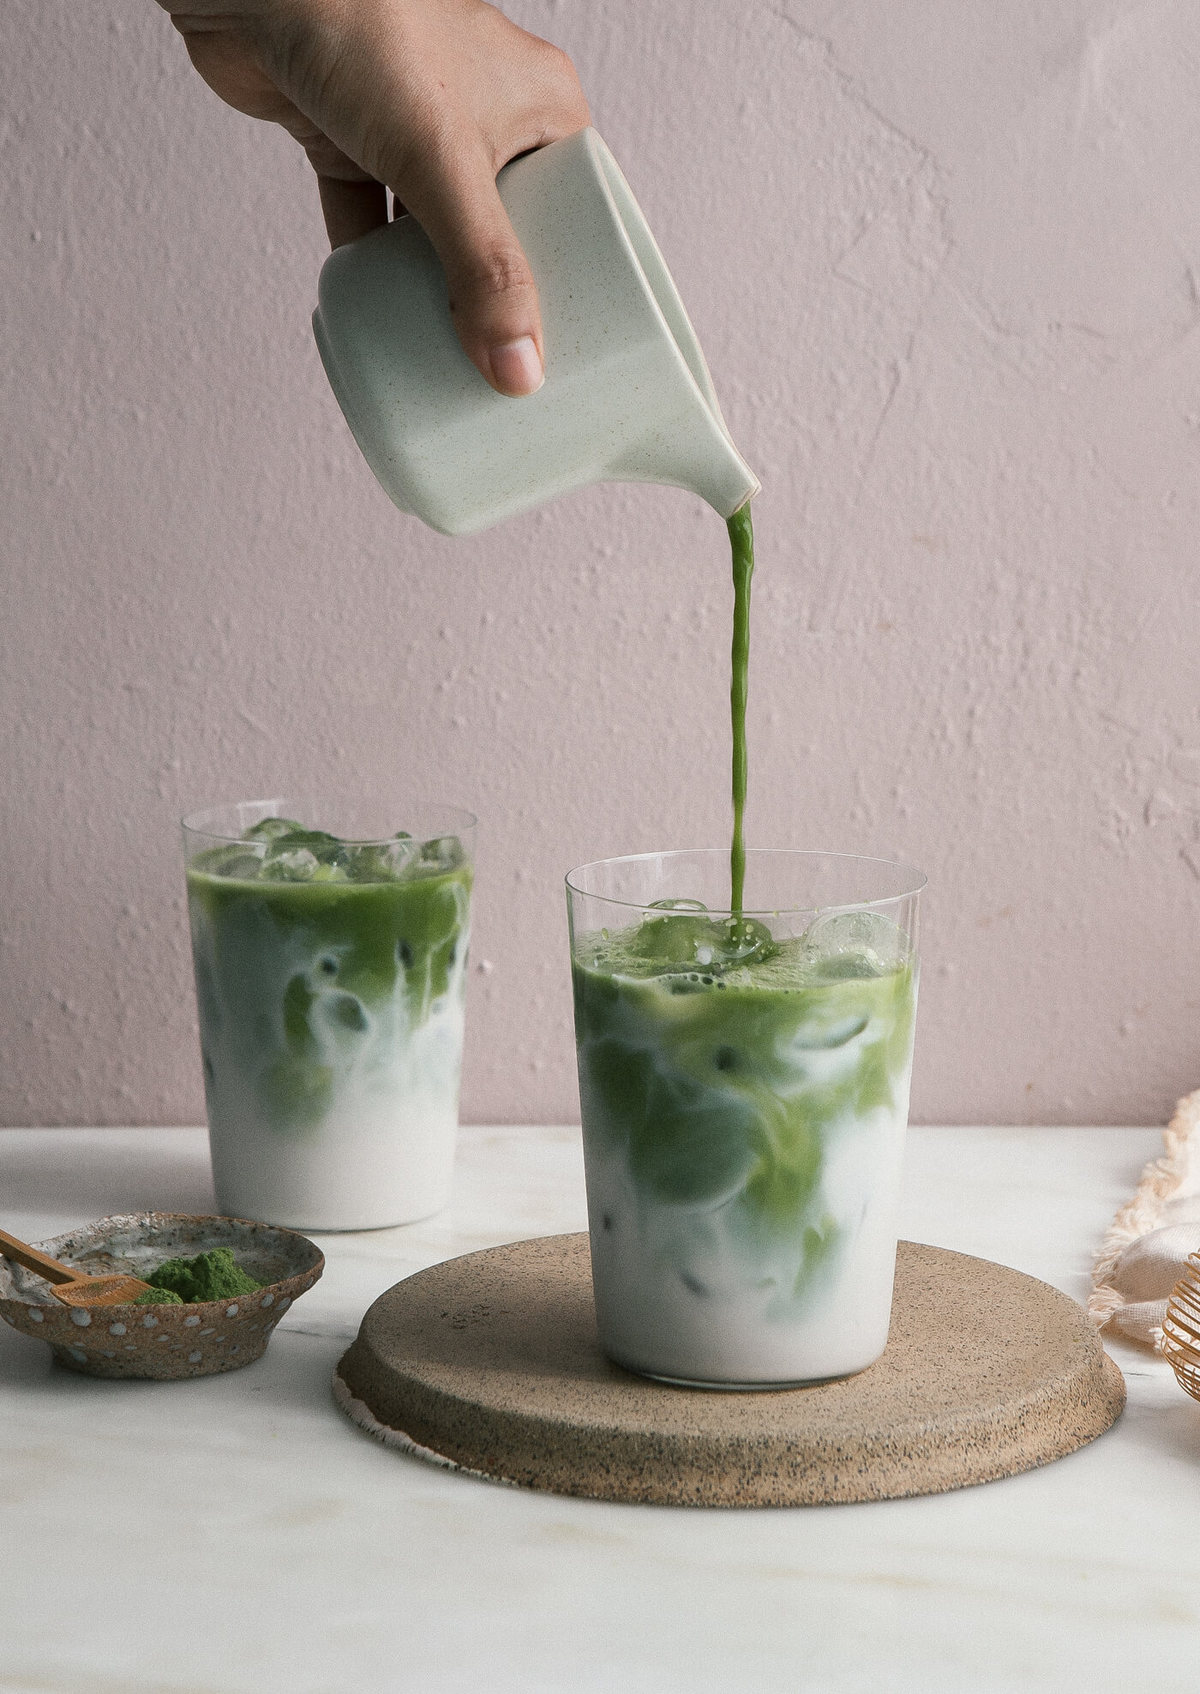 Iced Matcha Latte An Easy Recipe - A Cozy Kitchen